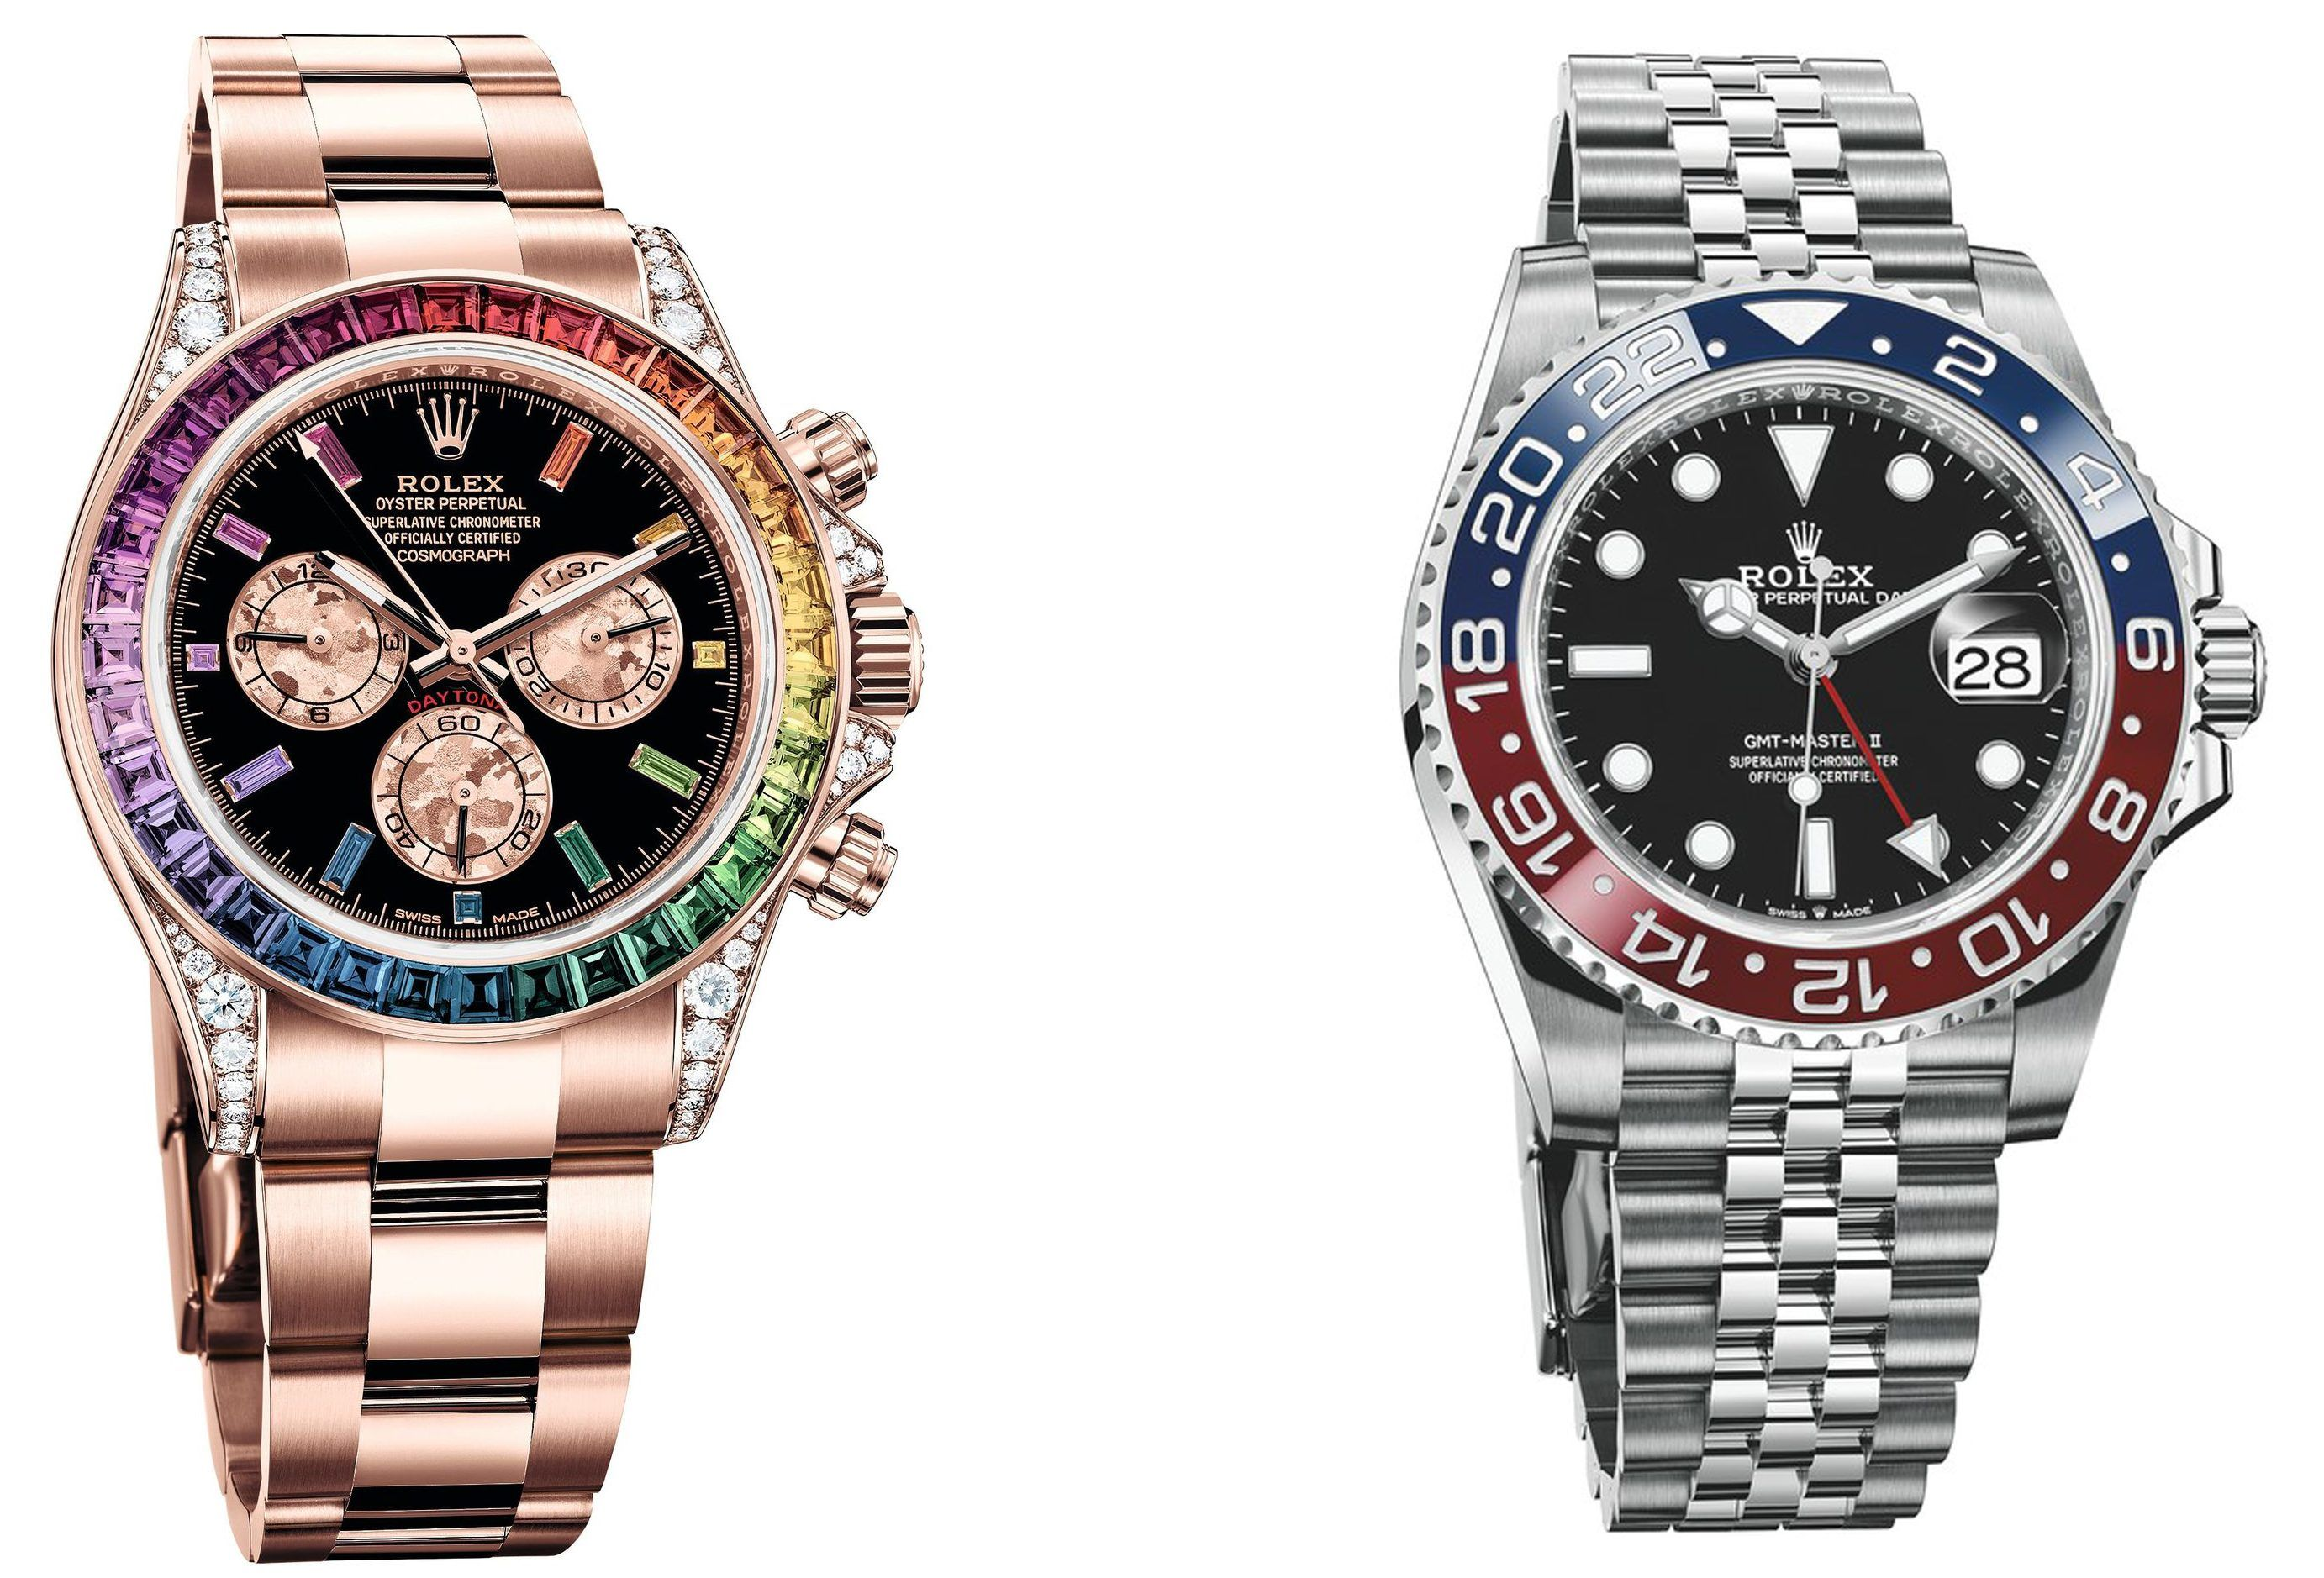 Daytona Rainbow and GMT-Master II